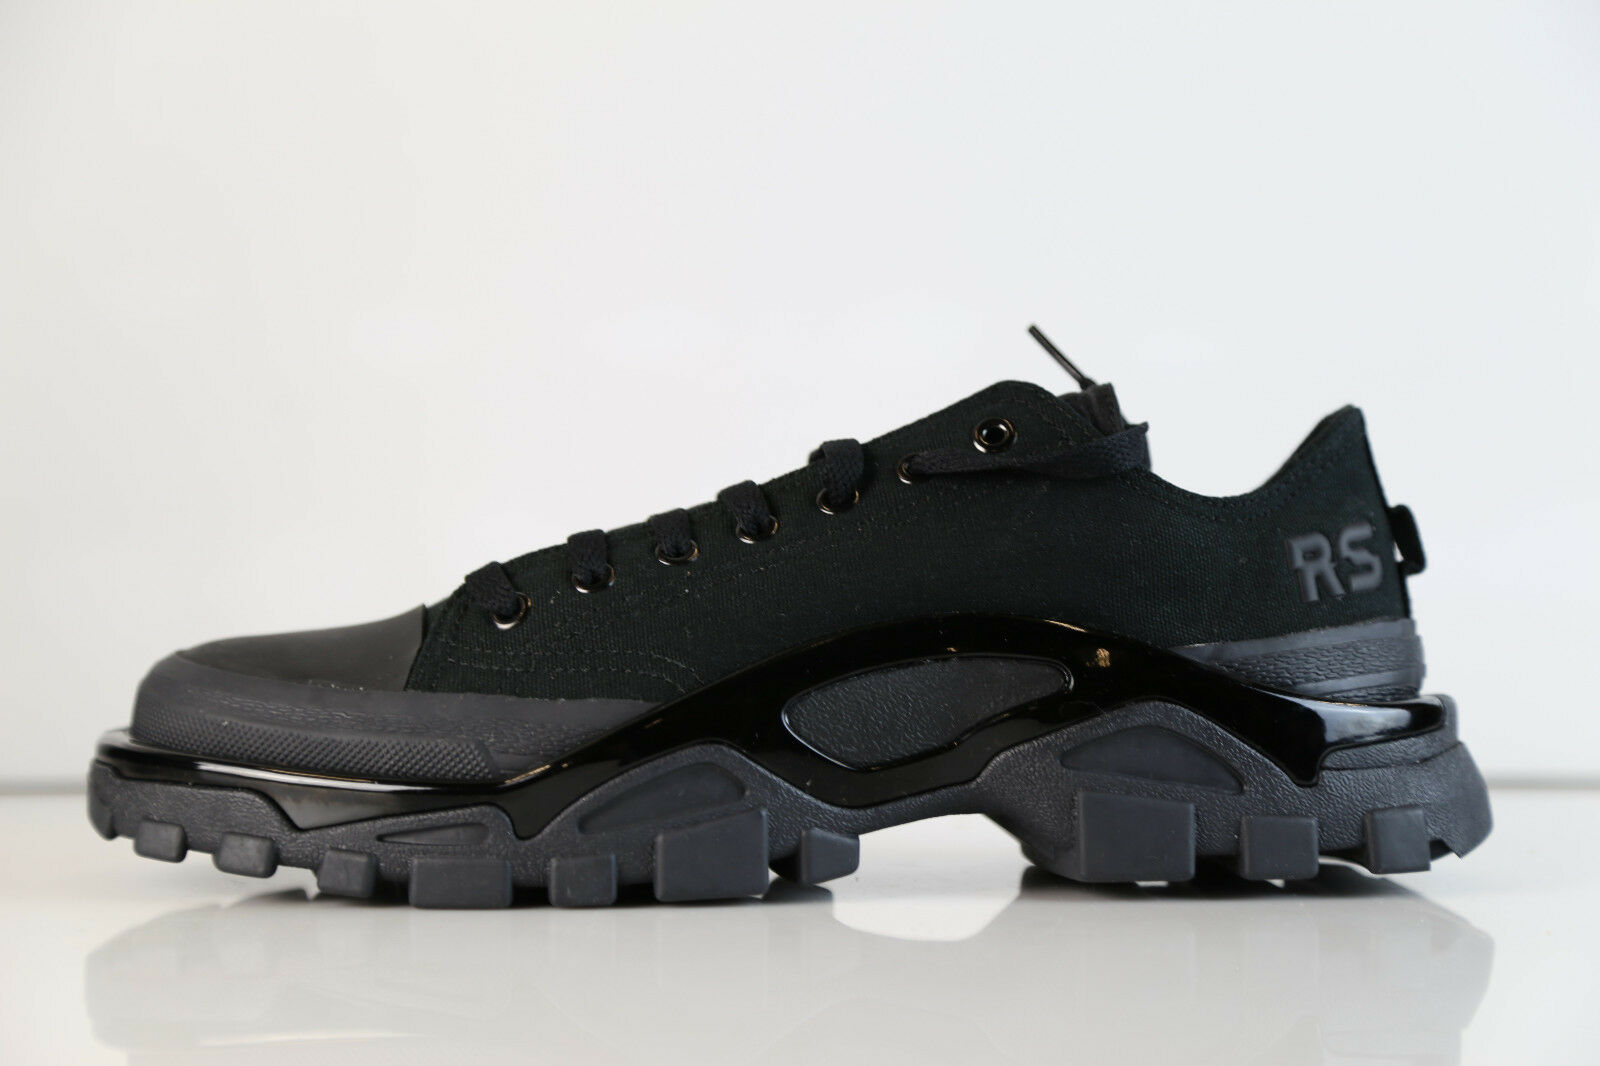 Adidas Raf Simons RS New Runner Core Black DA9297 8-11 canvas rf stan sneaker